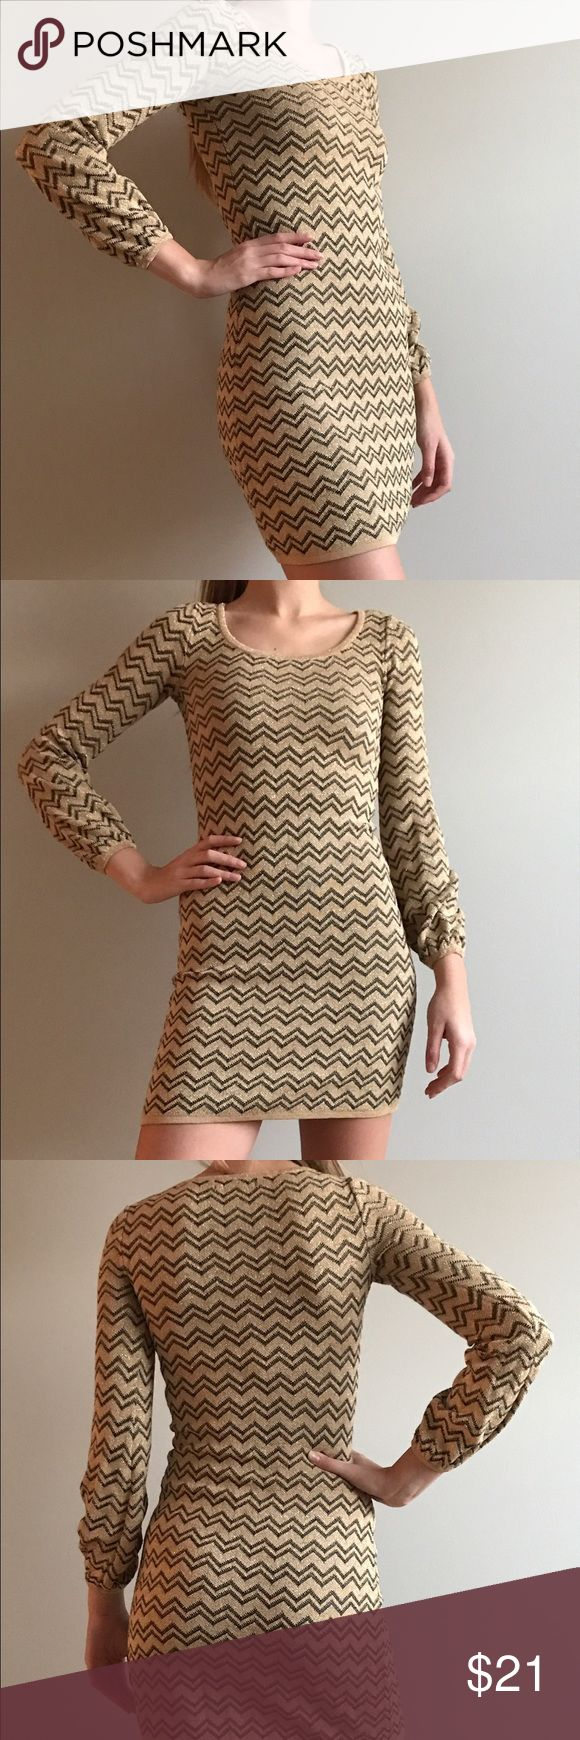 INC gold brown mini dress Very beautiful INC mini dress. Gold and brown combination of colors. Perfect condition, worn only a few times. INC International Concepts Dresses Mini